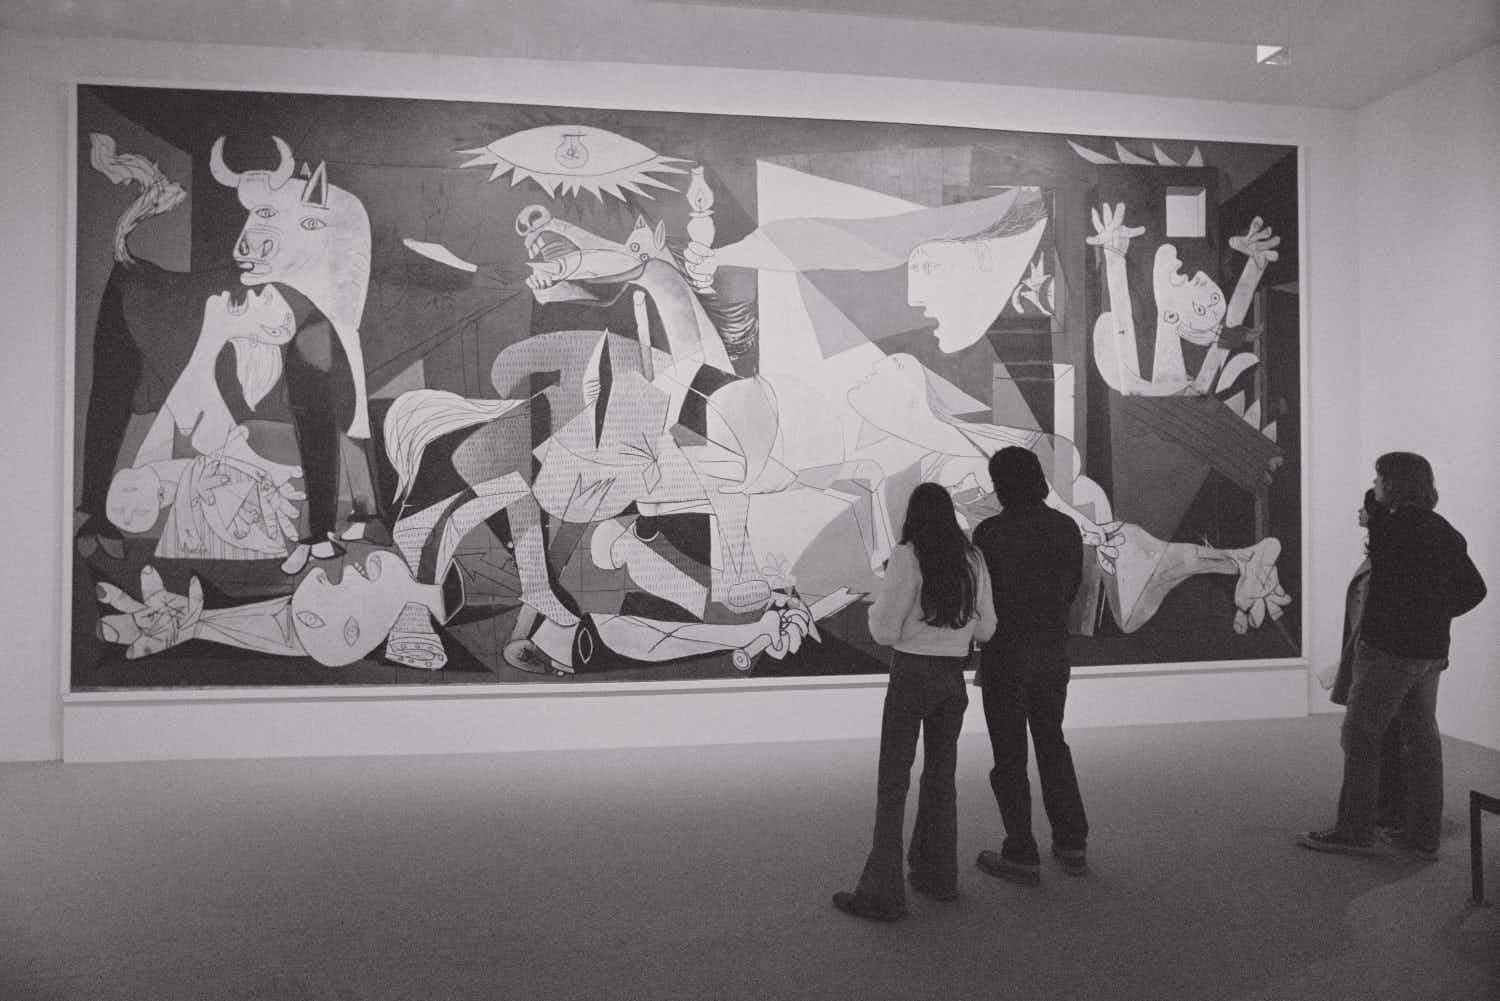 An online exhibition shows the hidden depths of Picasso's 'Guernica'